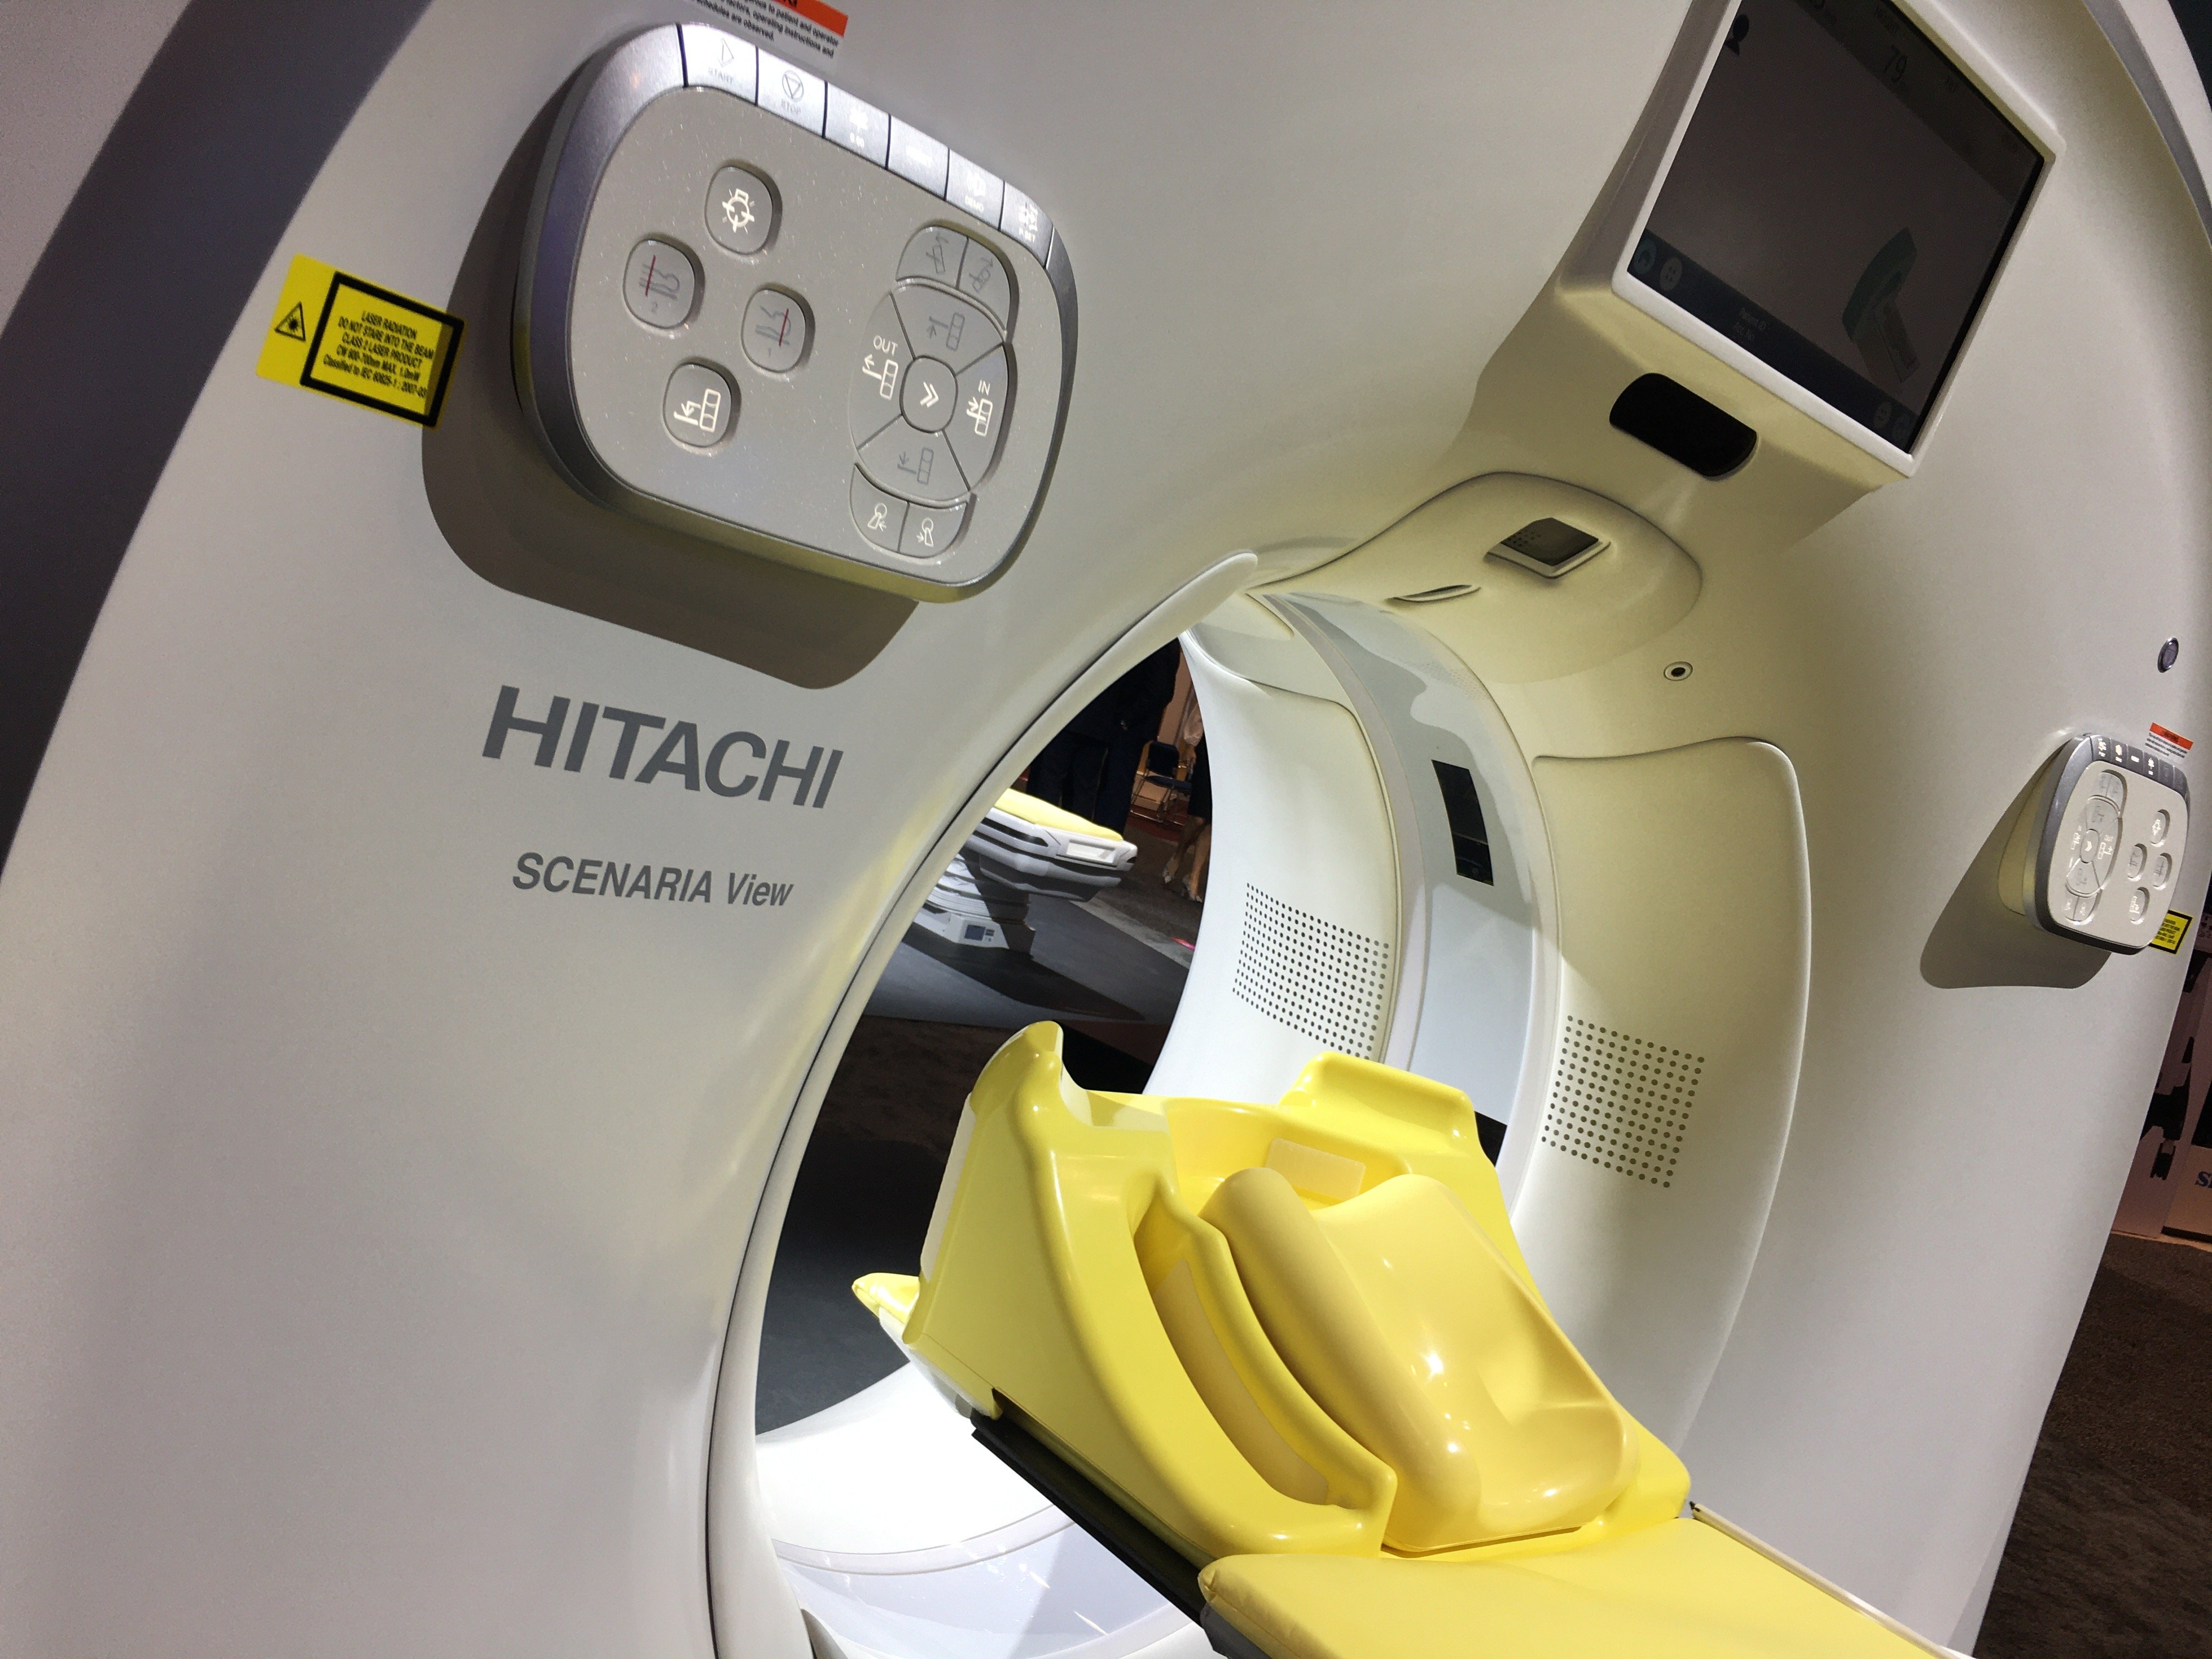 The Hitachi Scenaria View CT scanner on display at the 2019 Radiological Society of North America (RSNA) meeting in December. This workhorse 64 or 128 slice CT system, and Hitchai's portfolio of MRI and ultrasound systems, is attracting the attention of Fujifilm, which does not have some of these technologies. Combined, the new new portfolio may help Fufifilm capture a parger portion of international radiology market share. Photo by Dave Fornell.